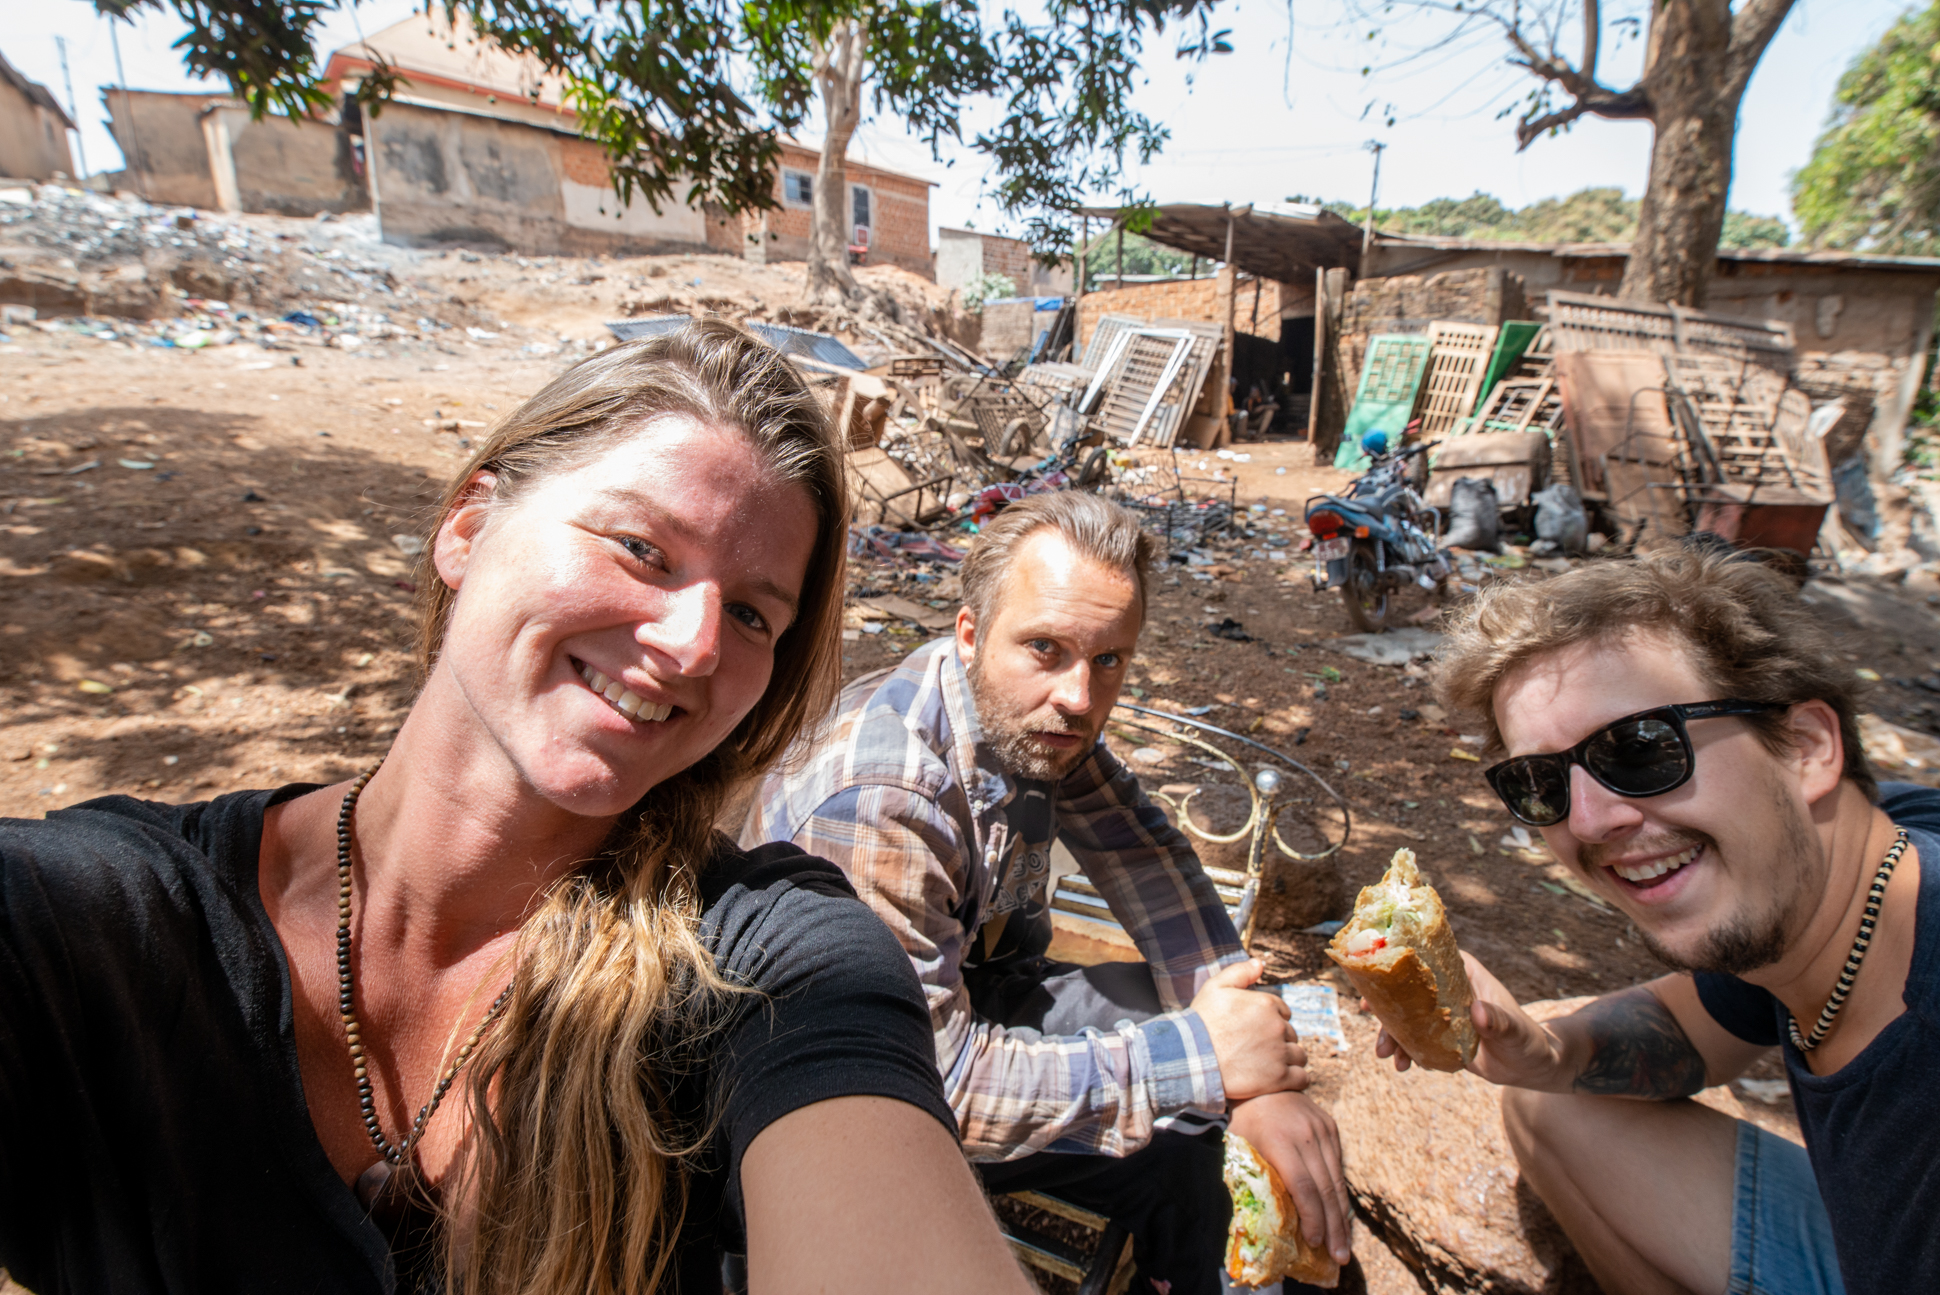 Own made lunch of Ellis&Me in Labé, Guinea-Conakry, Guinee-Conakry.